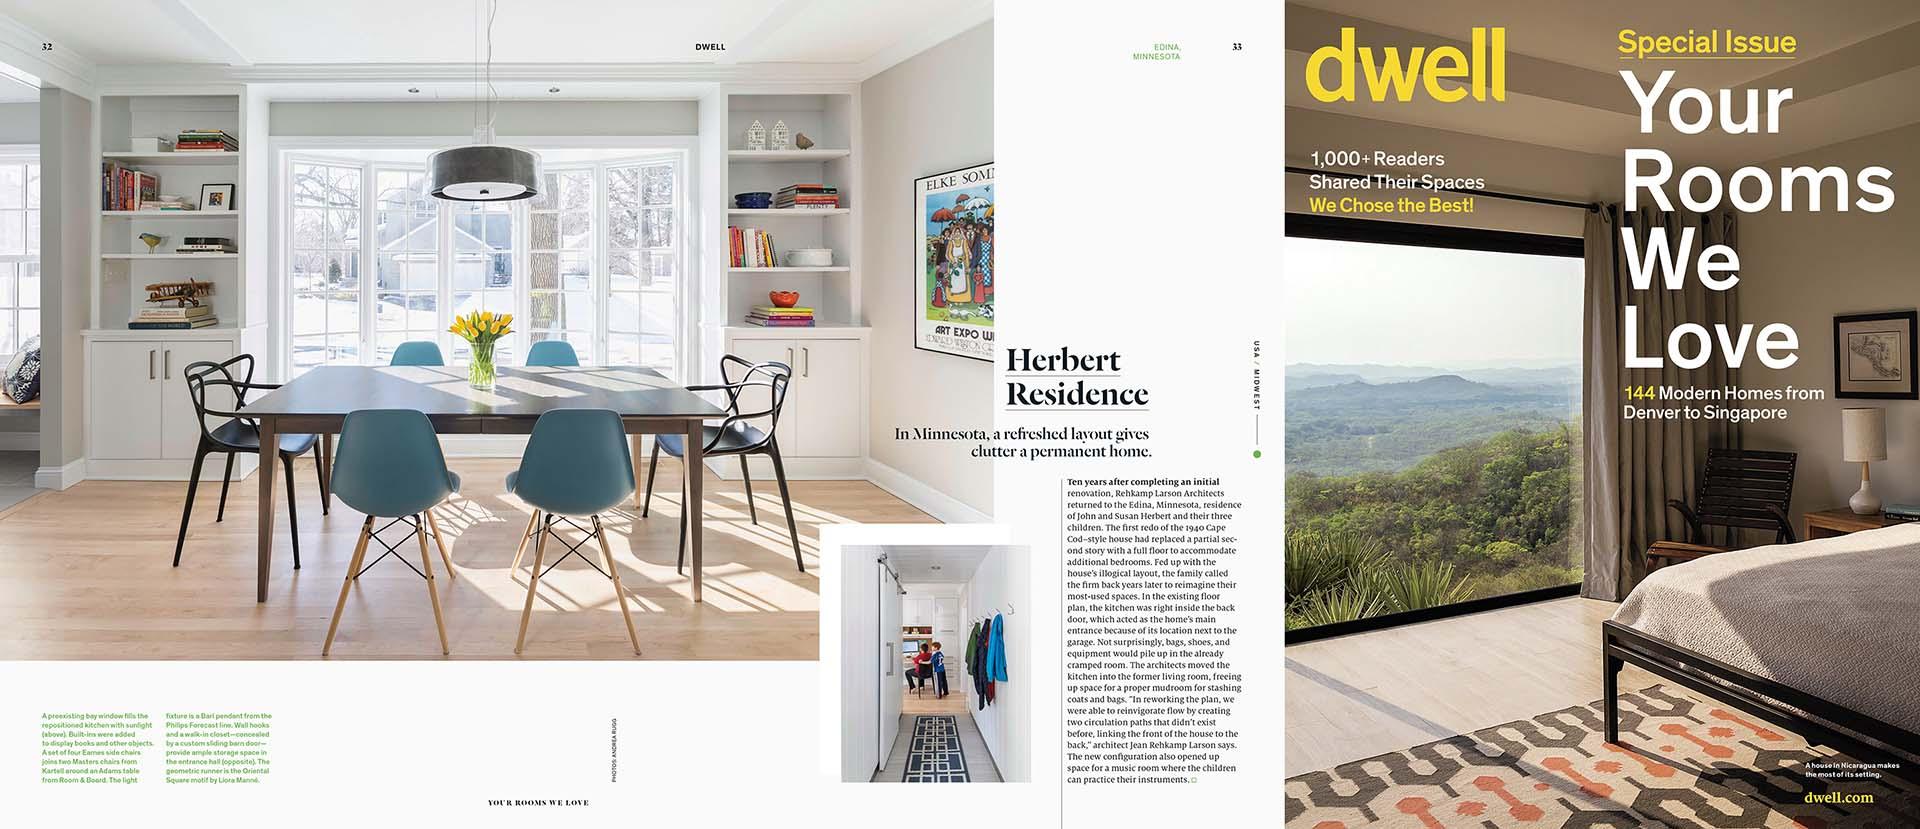 Andrea Rugg Photography | Dwell Magazine - Your Rooms We Love ...